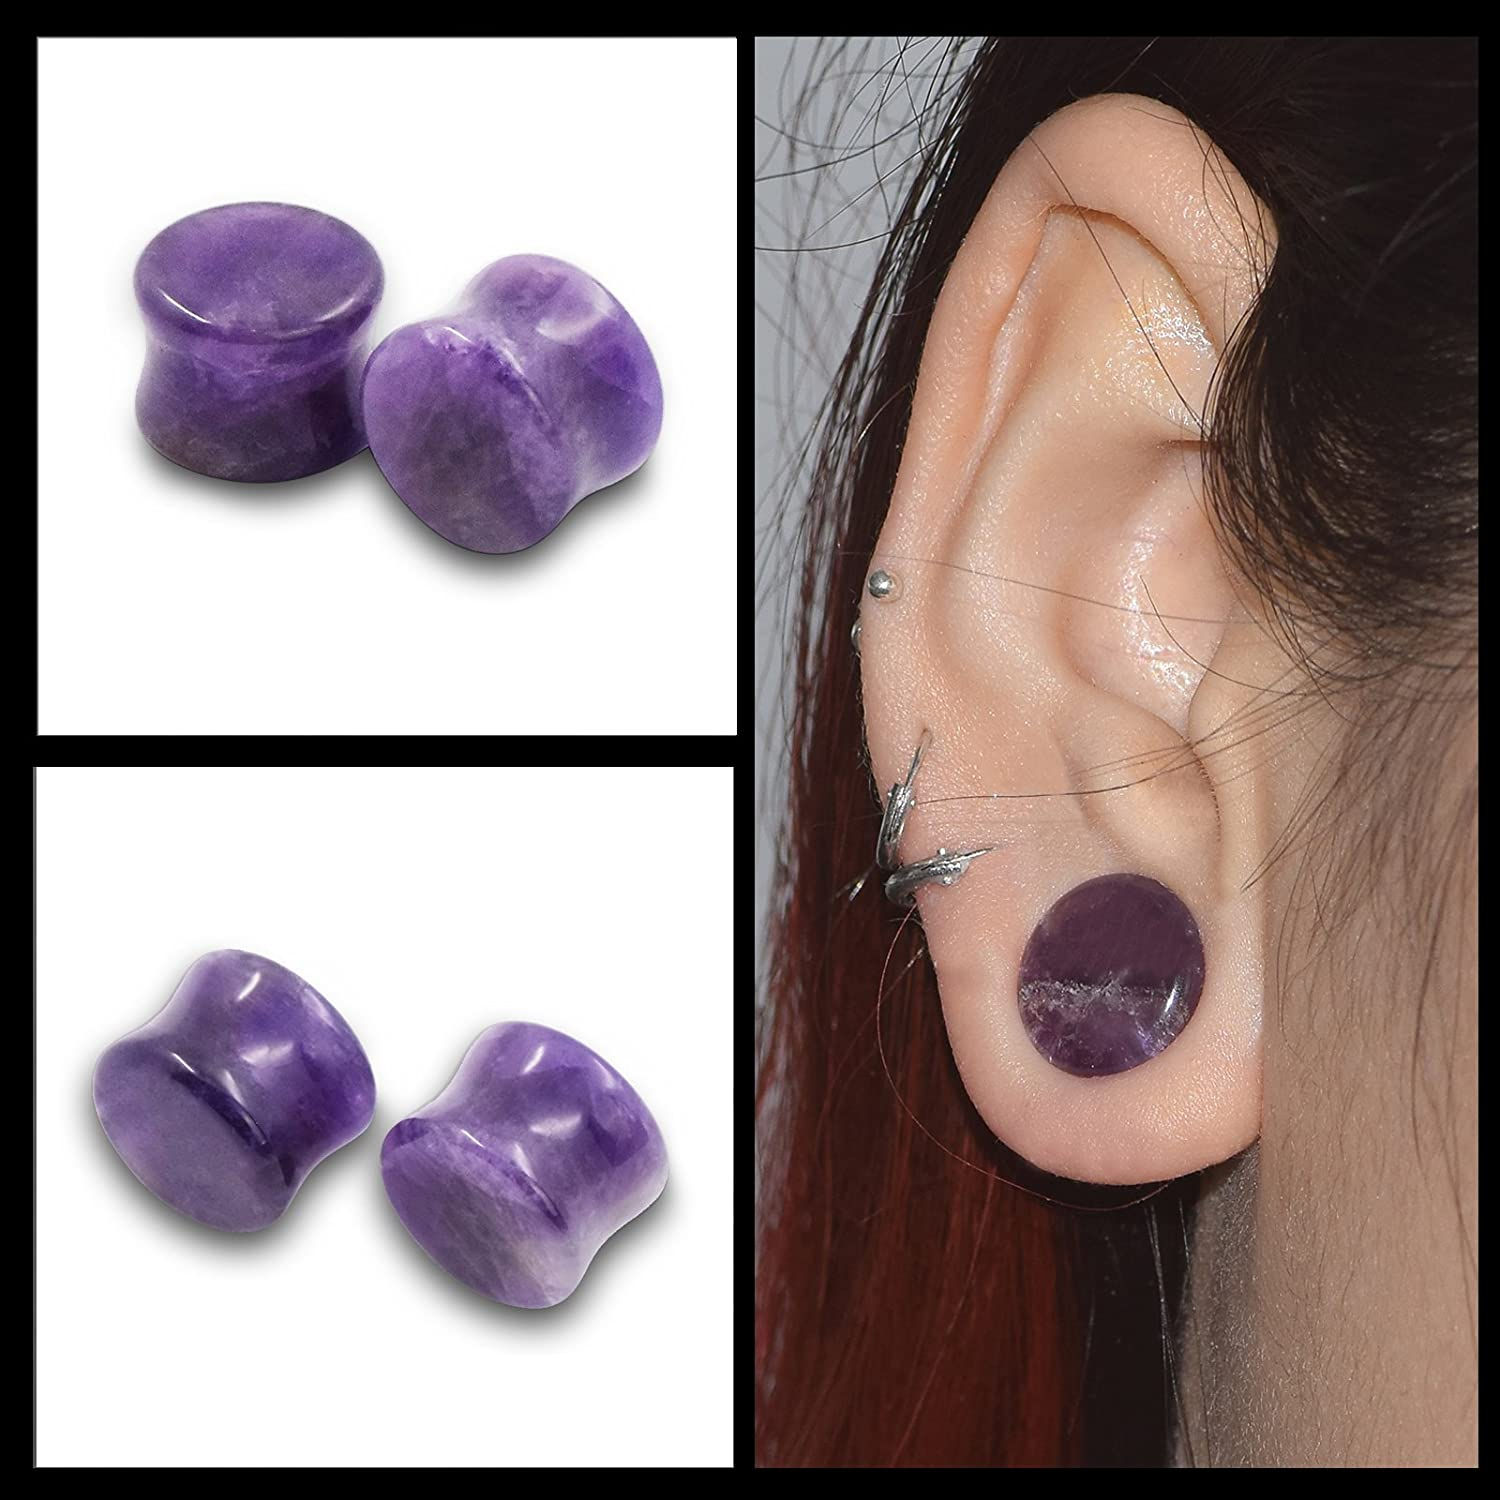 Qmcandy 18pcs or 8pcs 8g-5//8 in Organic Stone /& Stainless Steel Mixed Ear Tunnels Stretching Plugs Piercing